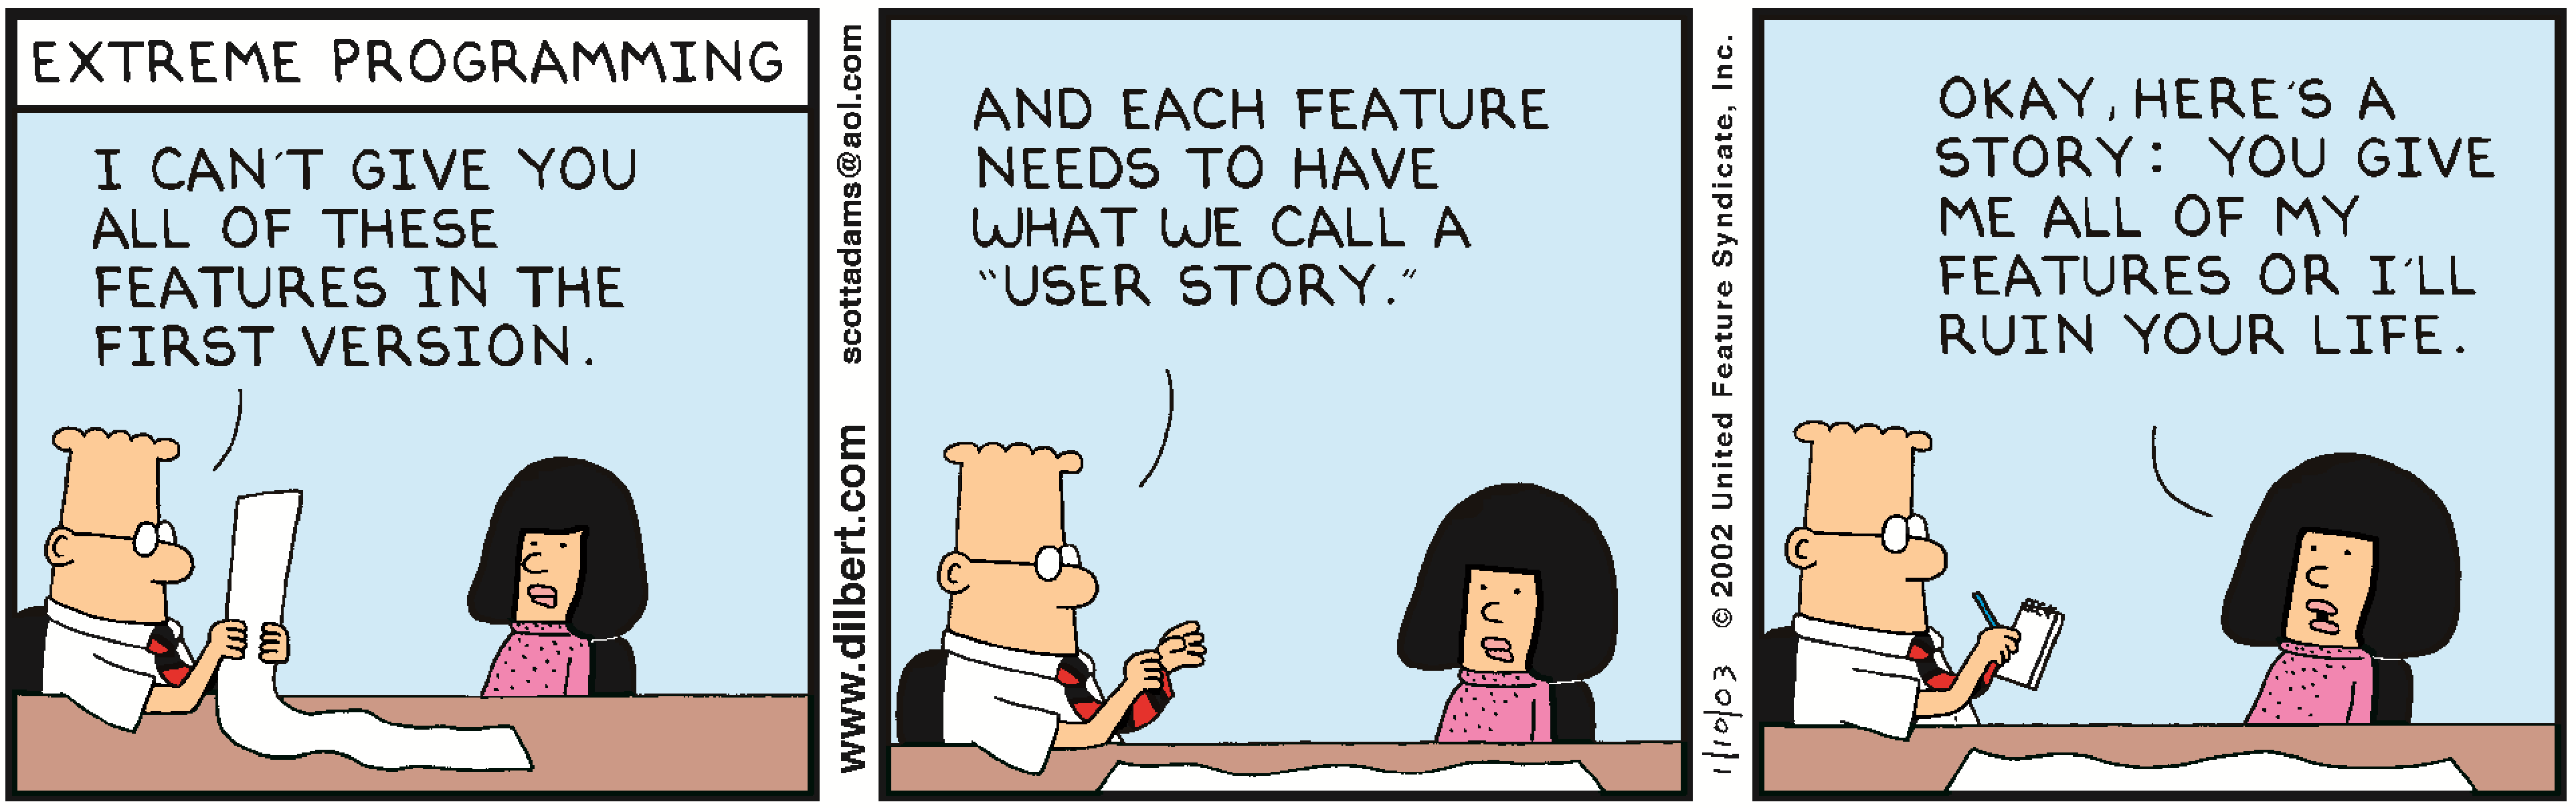 When building and testing software, user stories are an important resource.